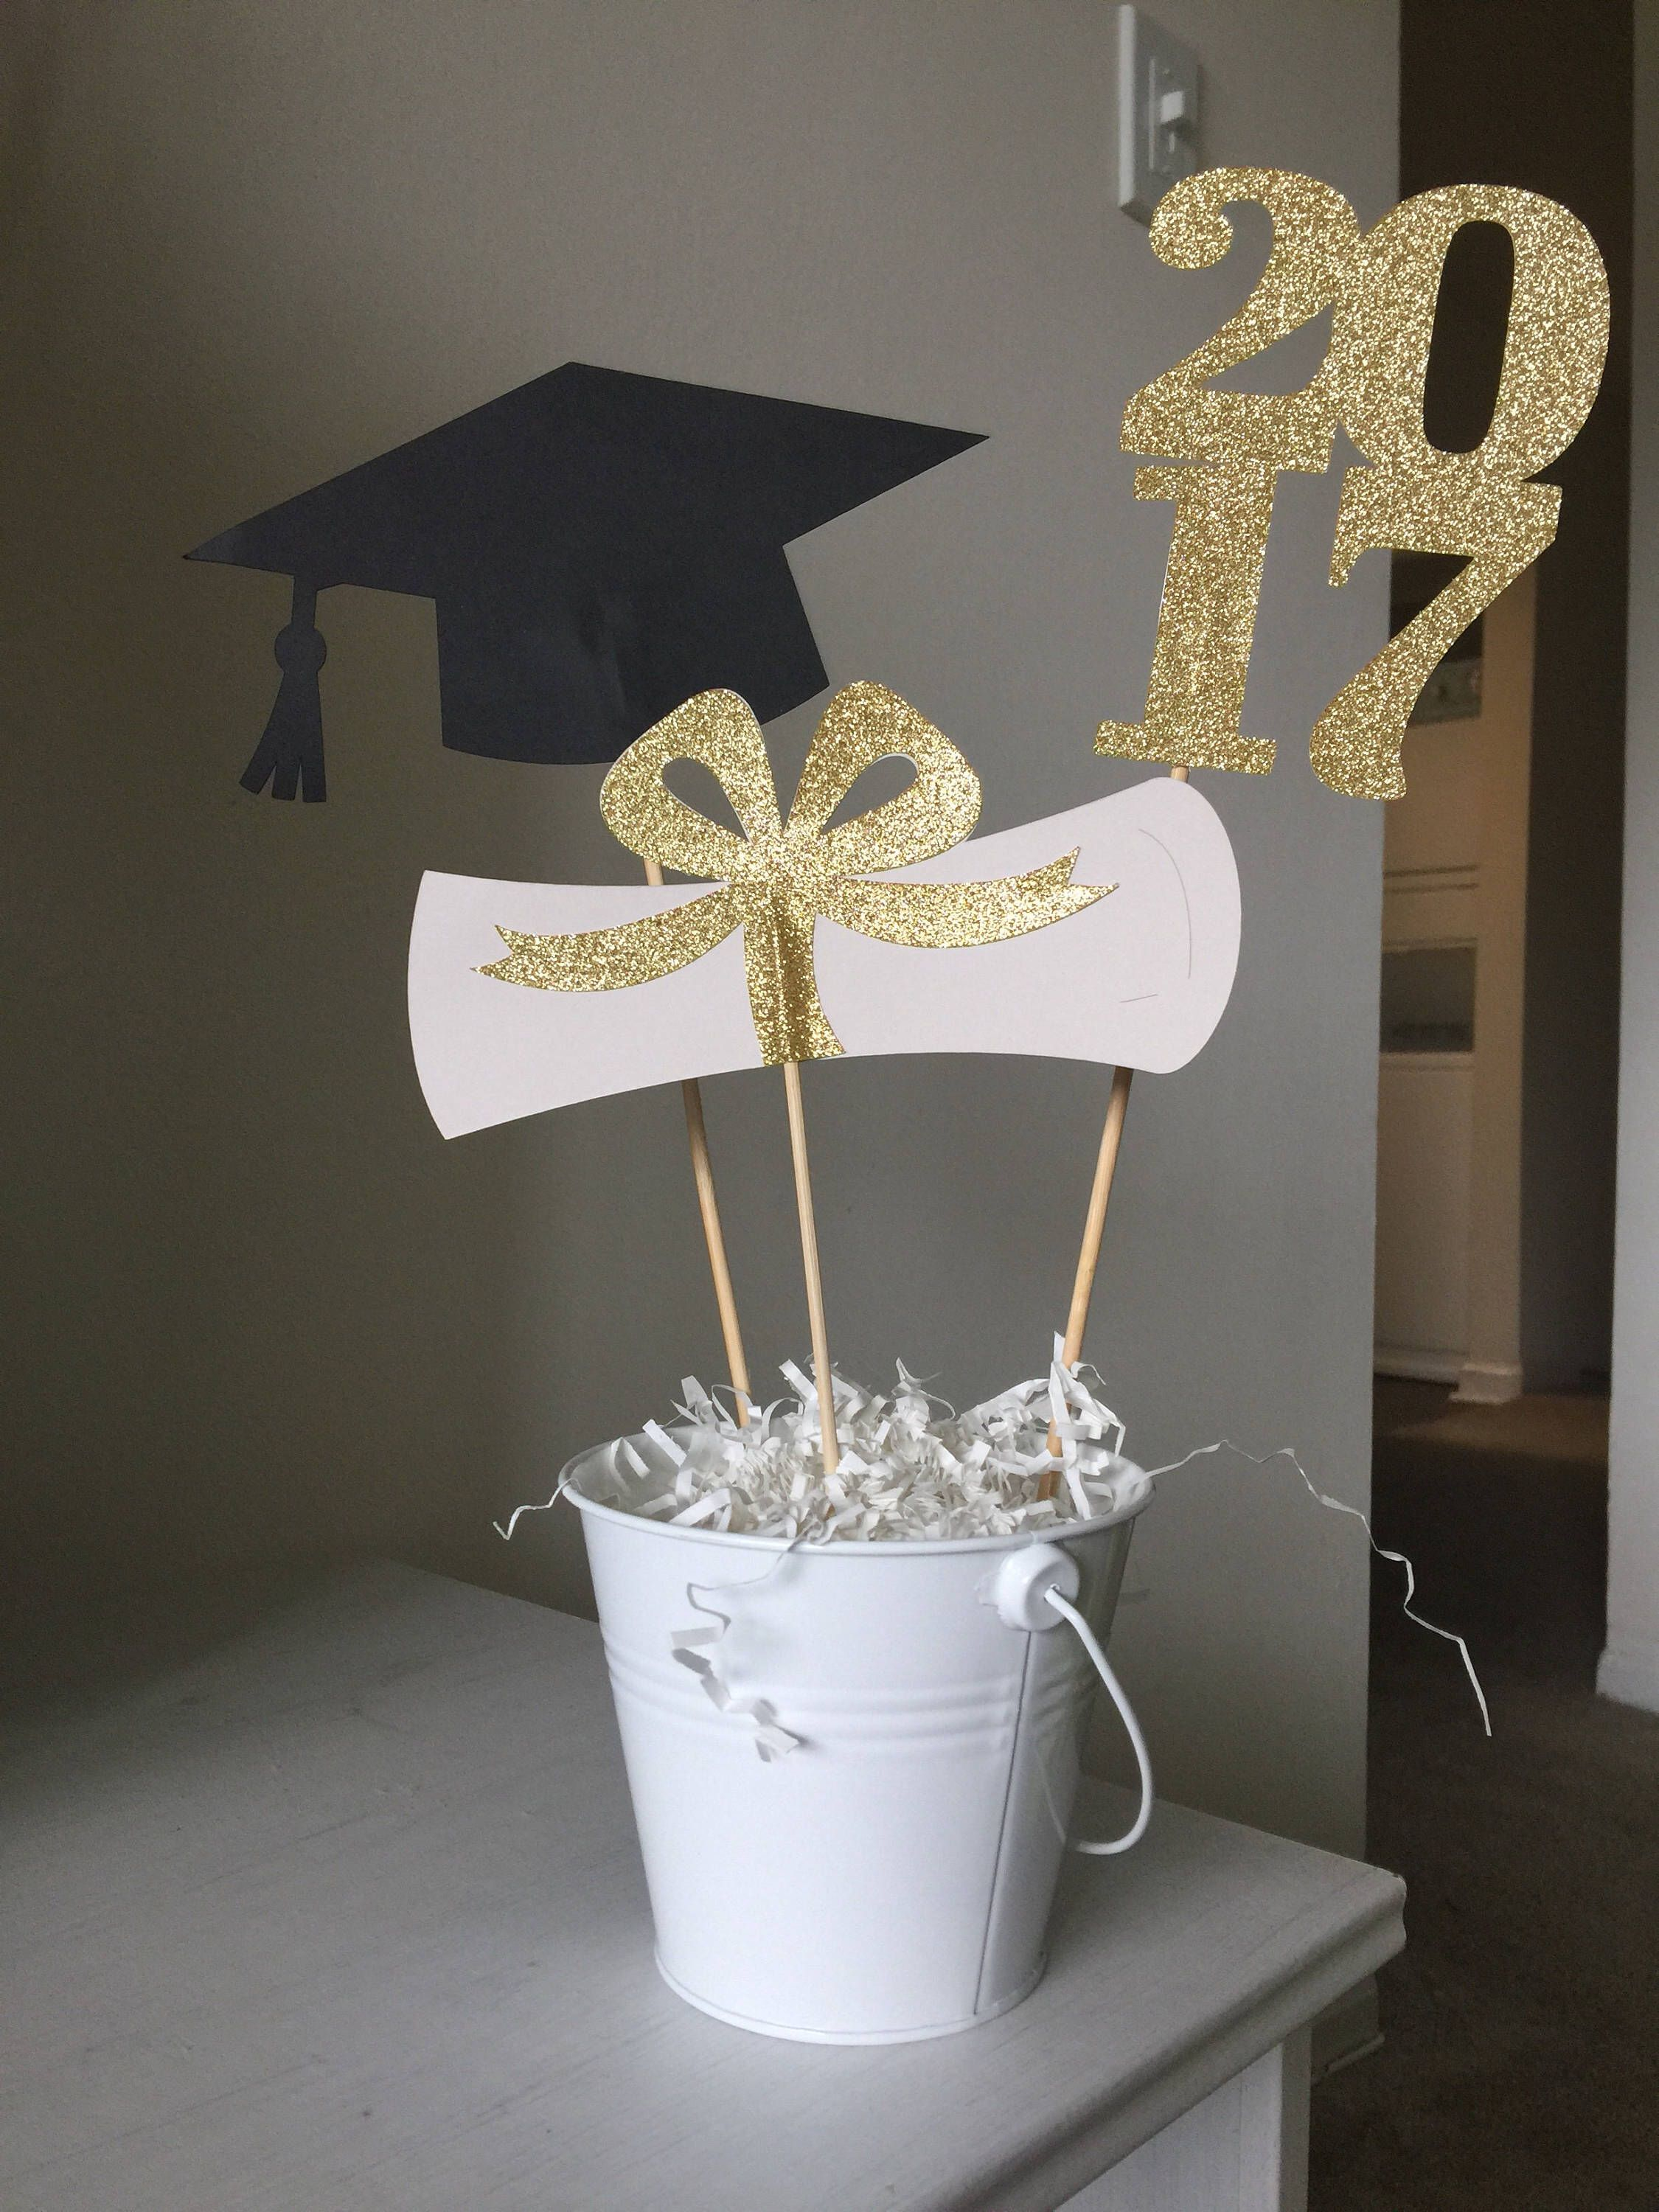 De Decoration Graduation Party Decorations Graduation Centerpiece Cap Diploma